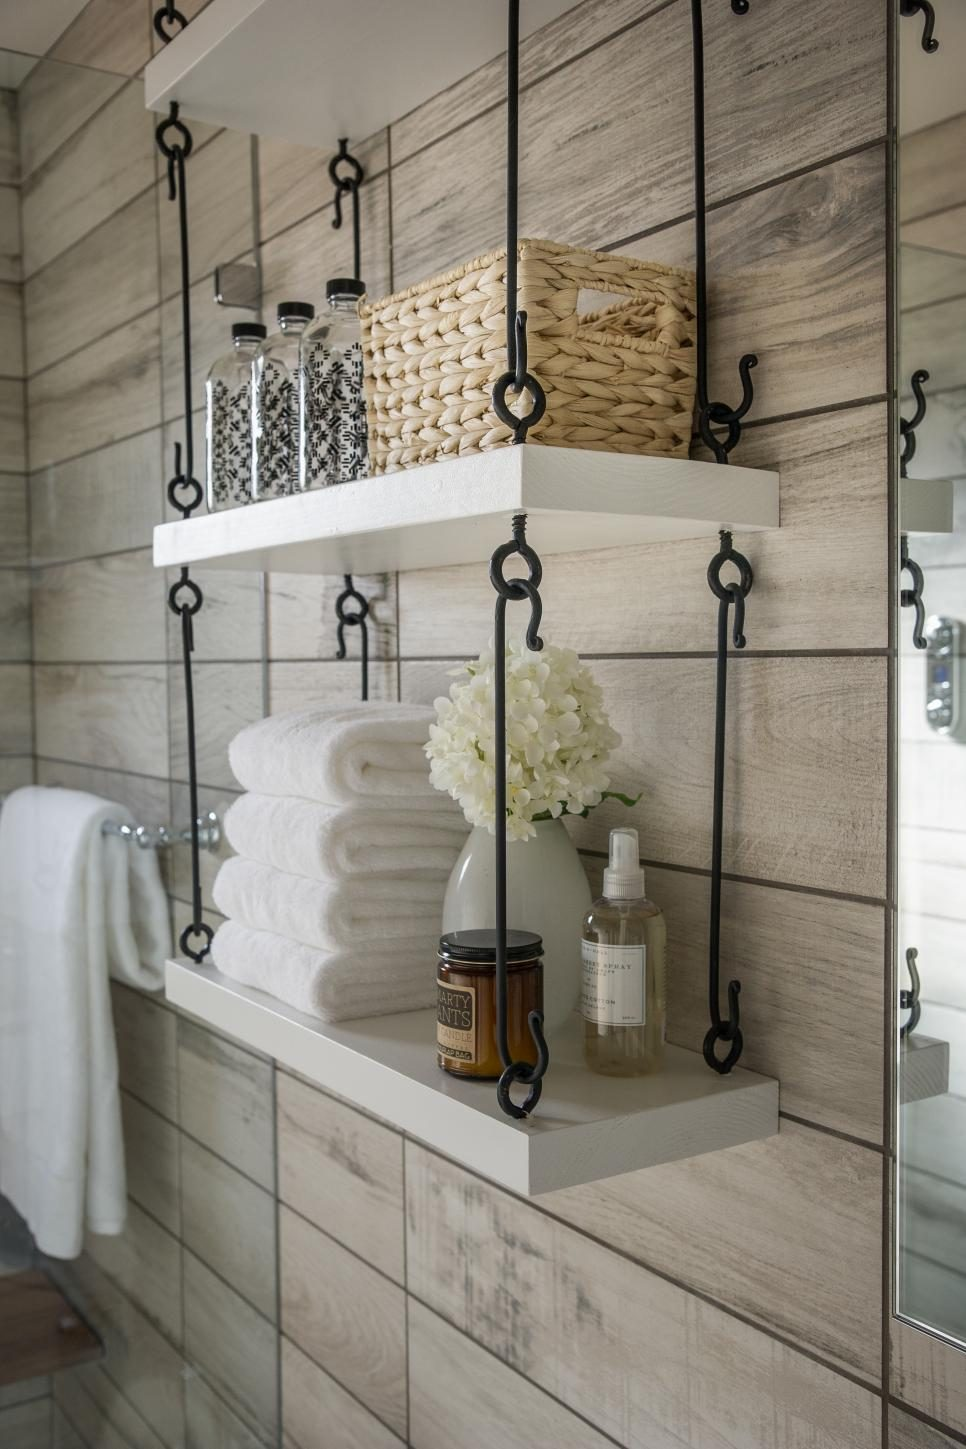 Rustic hanging shelves suspended by iron hooks